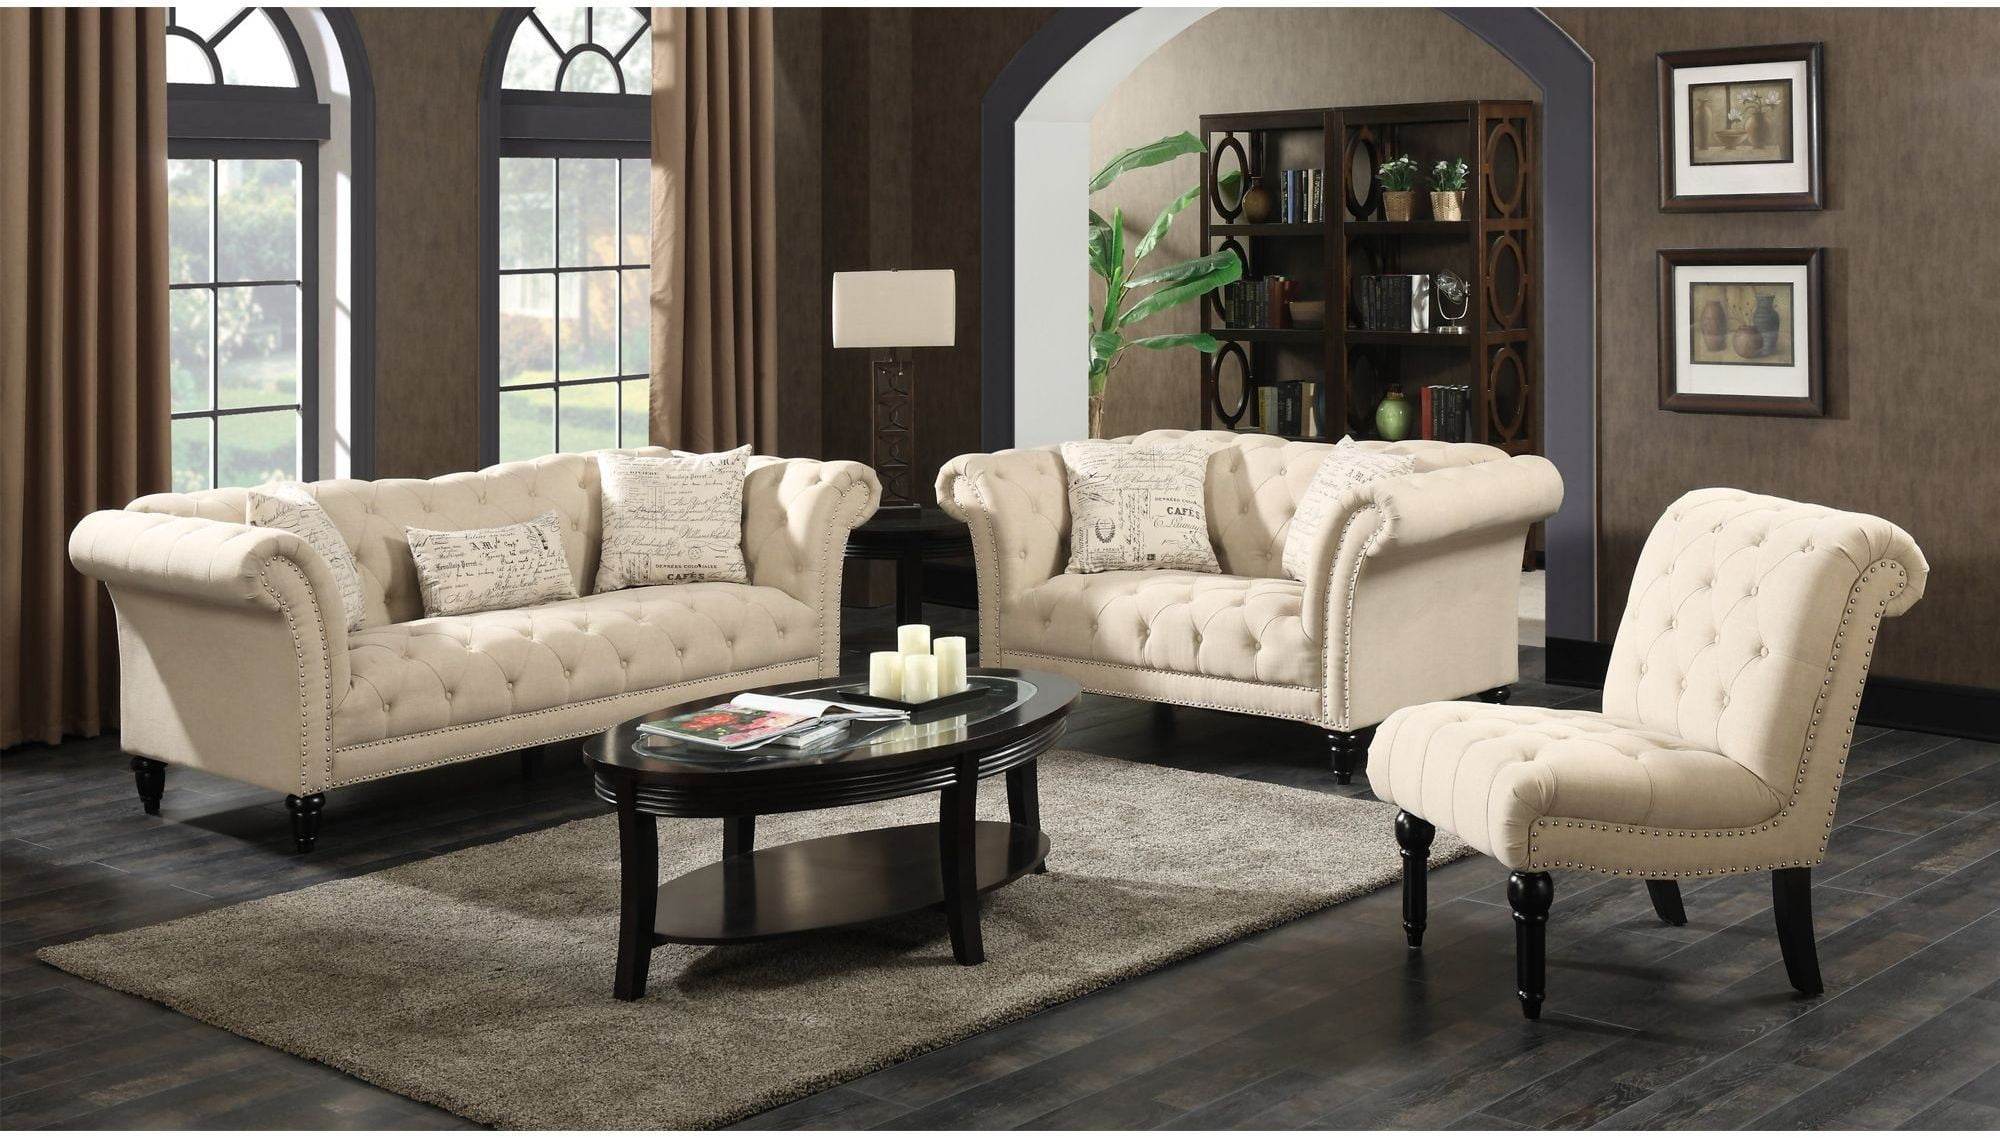 create your own living room set island themed twine natural with french script pillows from 2961235